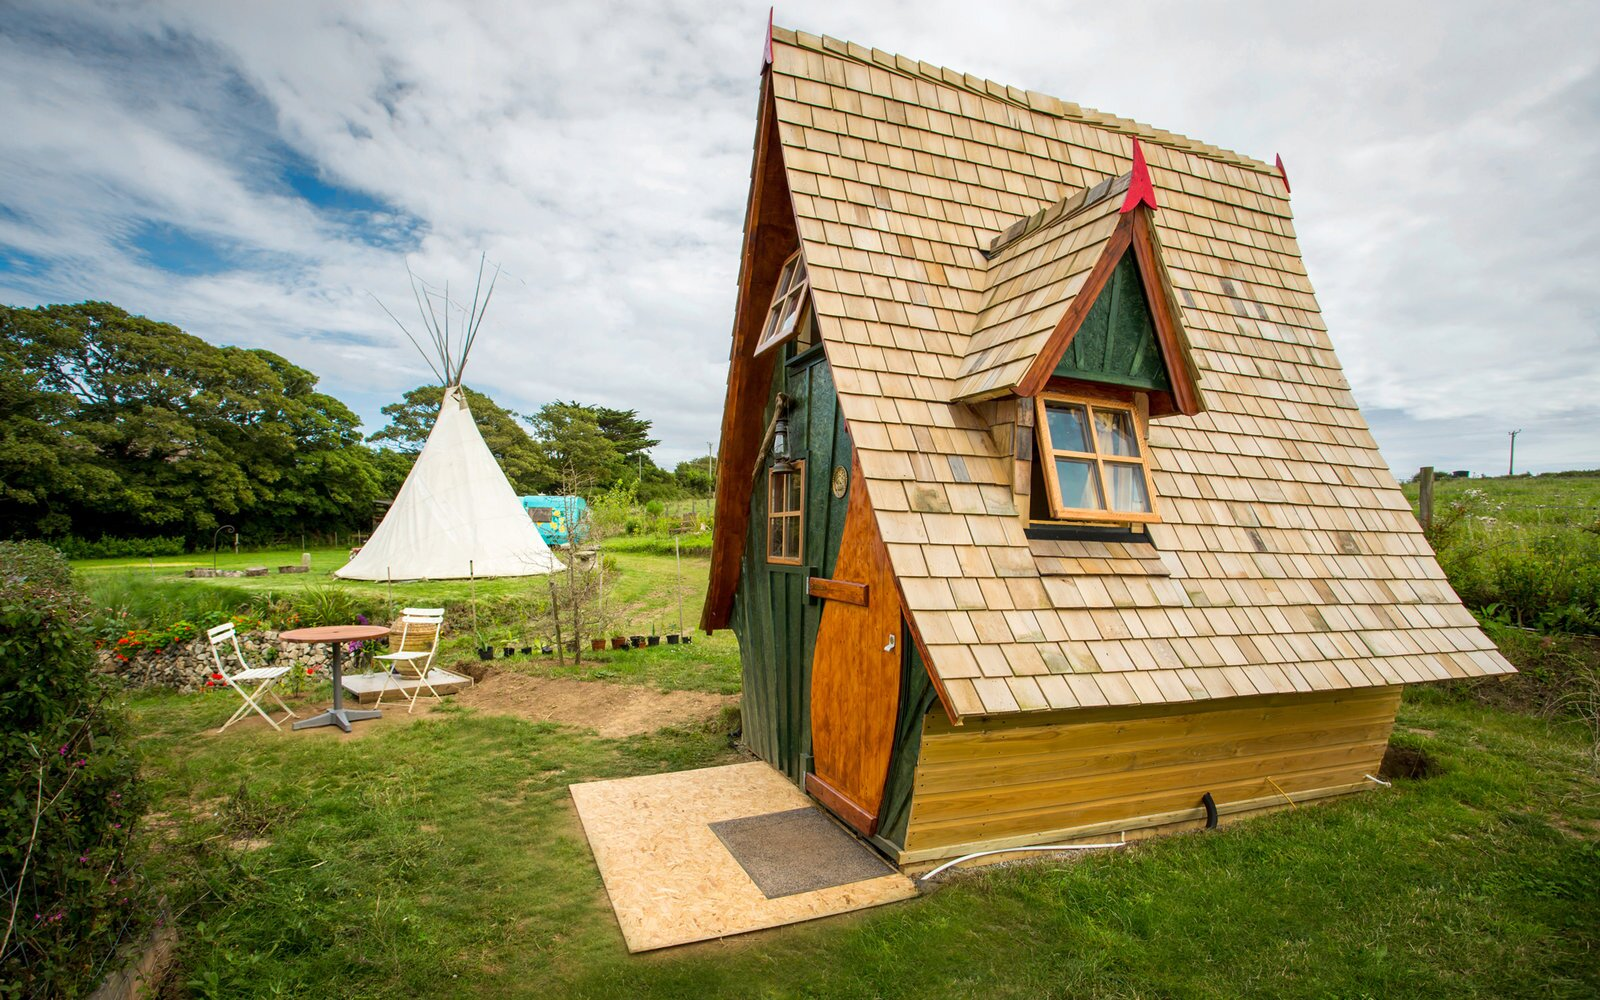 The Most Beautiful Airbnb Rentals in Europe | Travel + Leisure